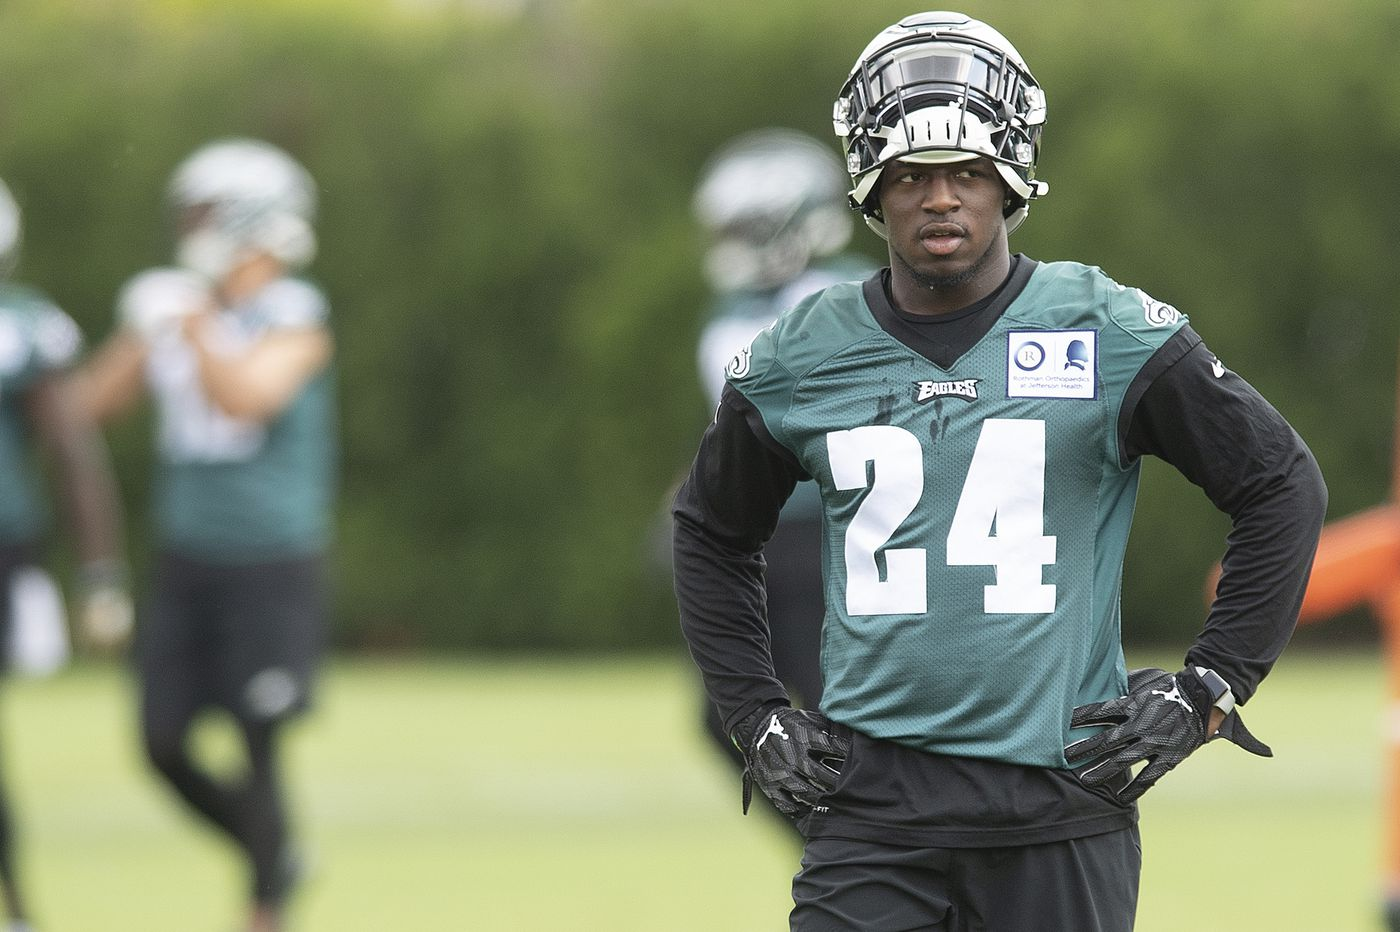 Jordan Howard catching on in Philadelphia, expects to be used differently than in Chicago